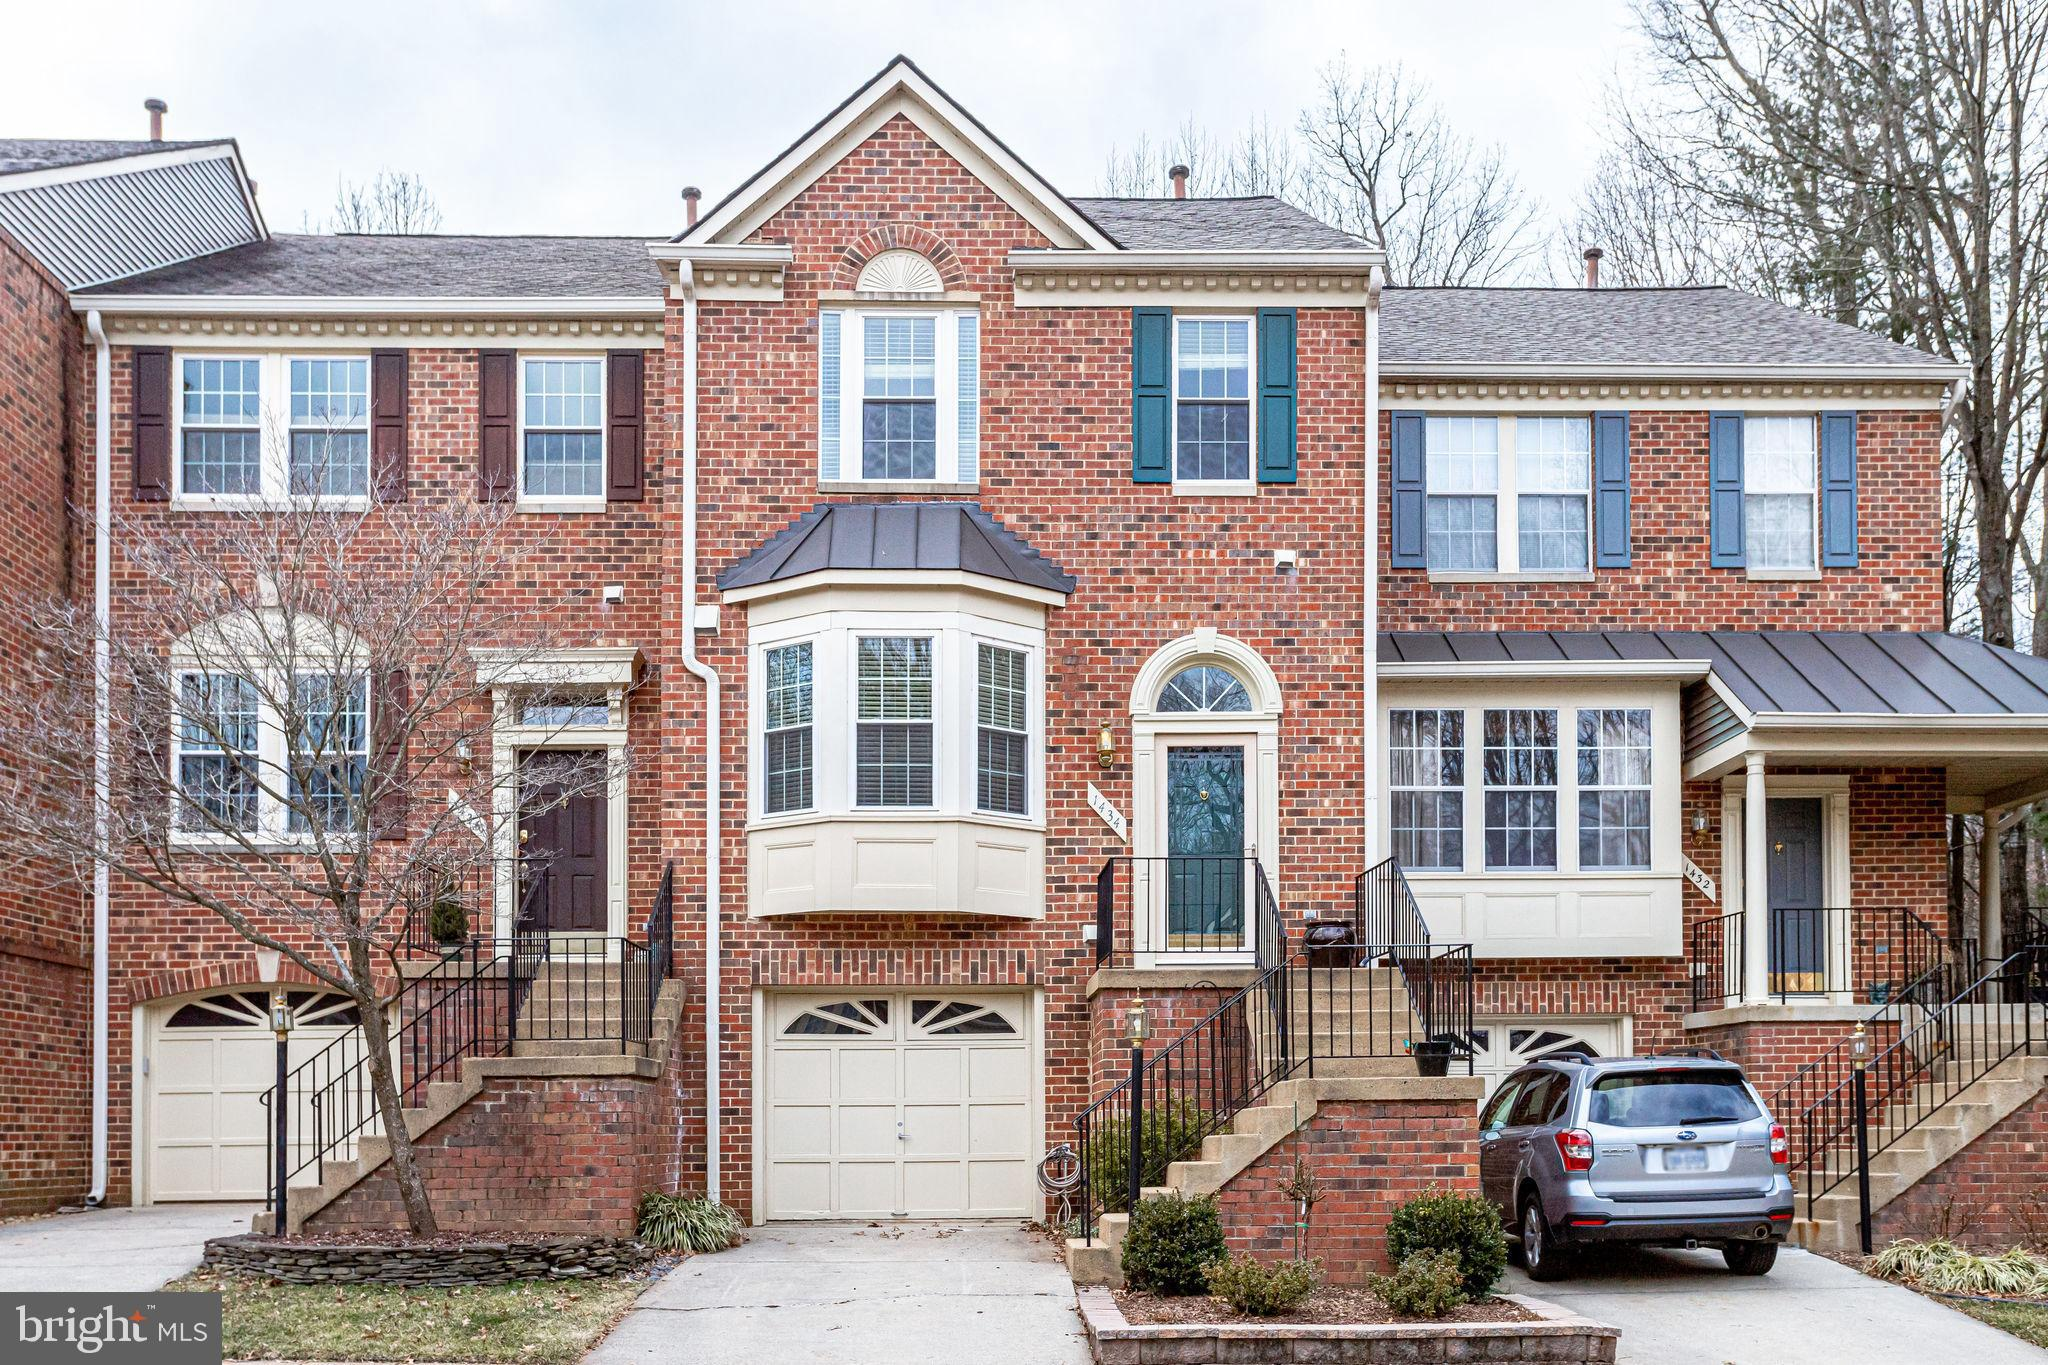 This Annapolis model townhome with over 2,000 sq. ft. has gorgeous updates and is perfectly situated